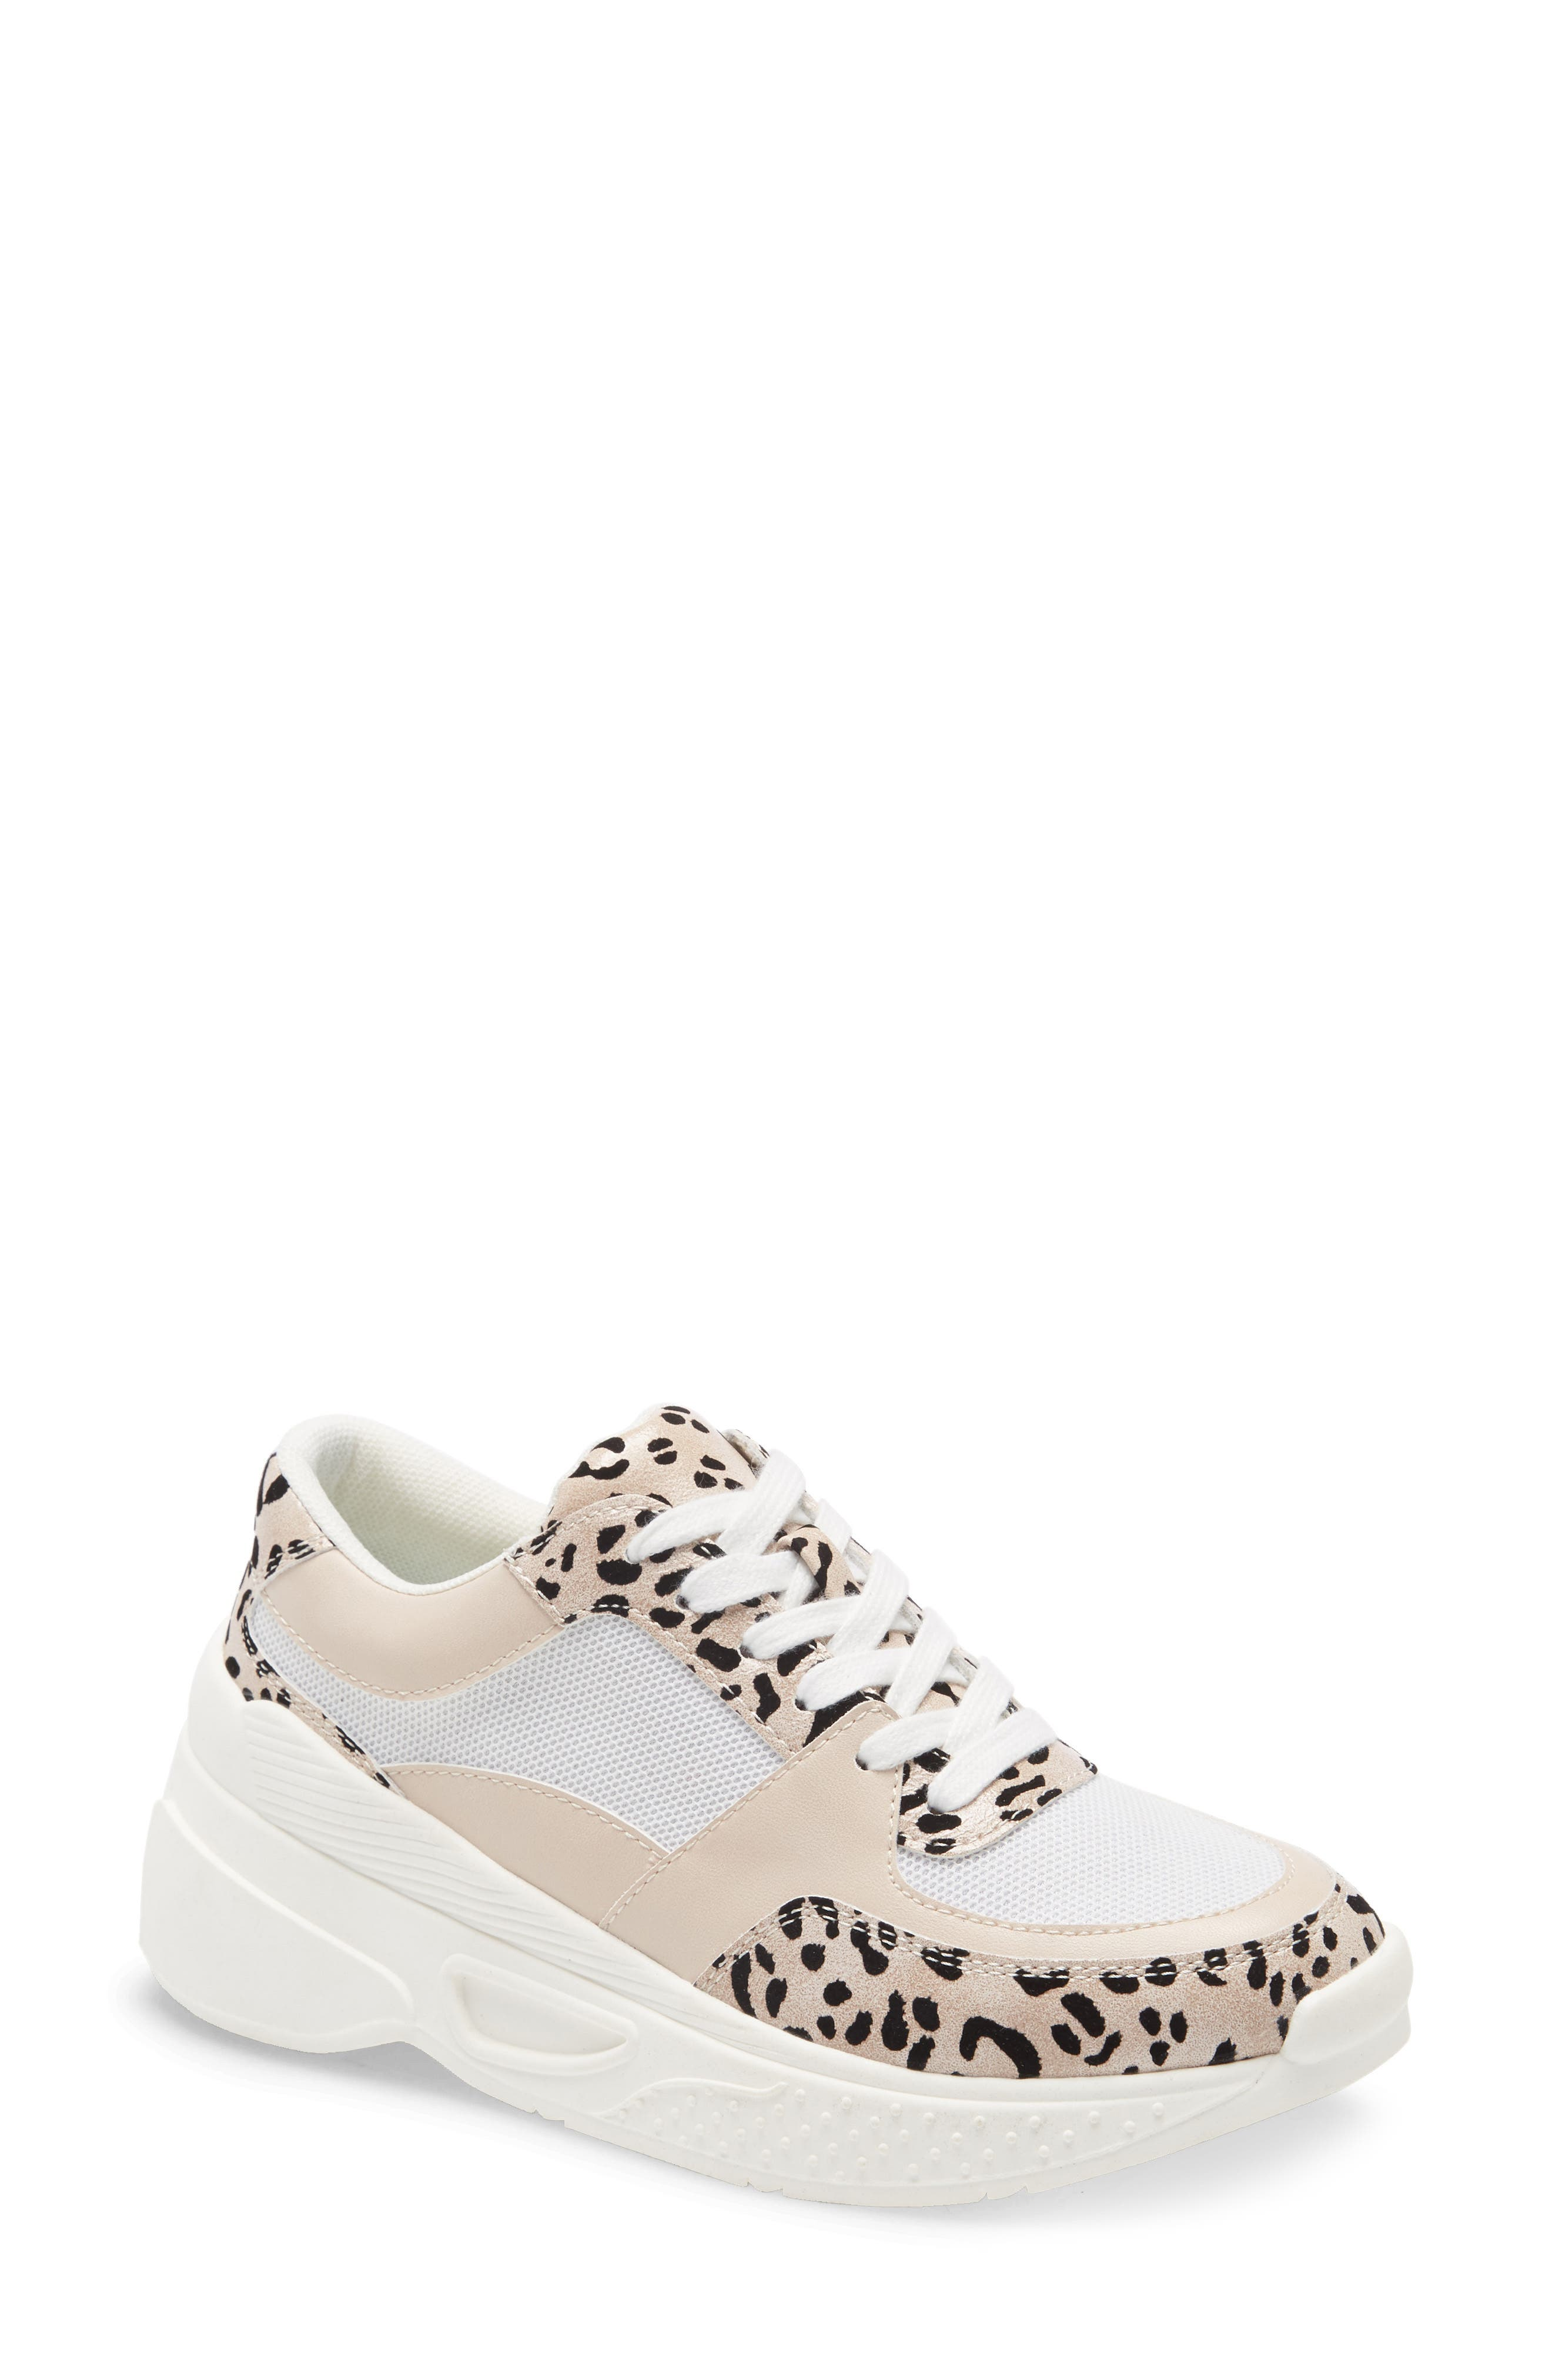 A sporty platform wedge adds to the street-chic style of a striking sneaker fashioned with animal-print panels and breezy mesh insets. Style Name: Coconuts By Matisse Sneaky Platform Wedge Sneaker (Women). Style Number: 5951684. Available in stores.